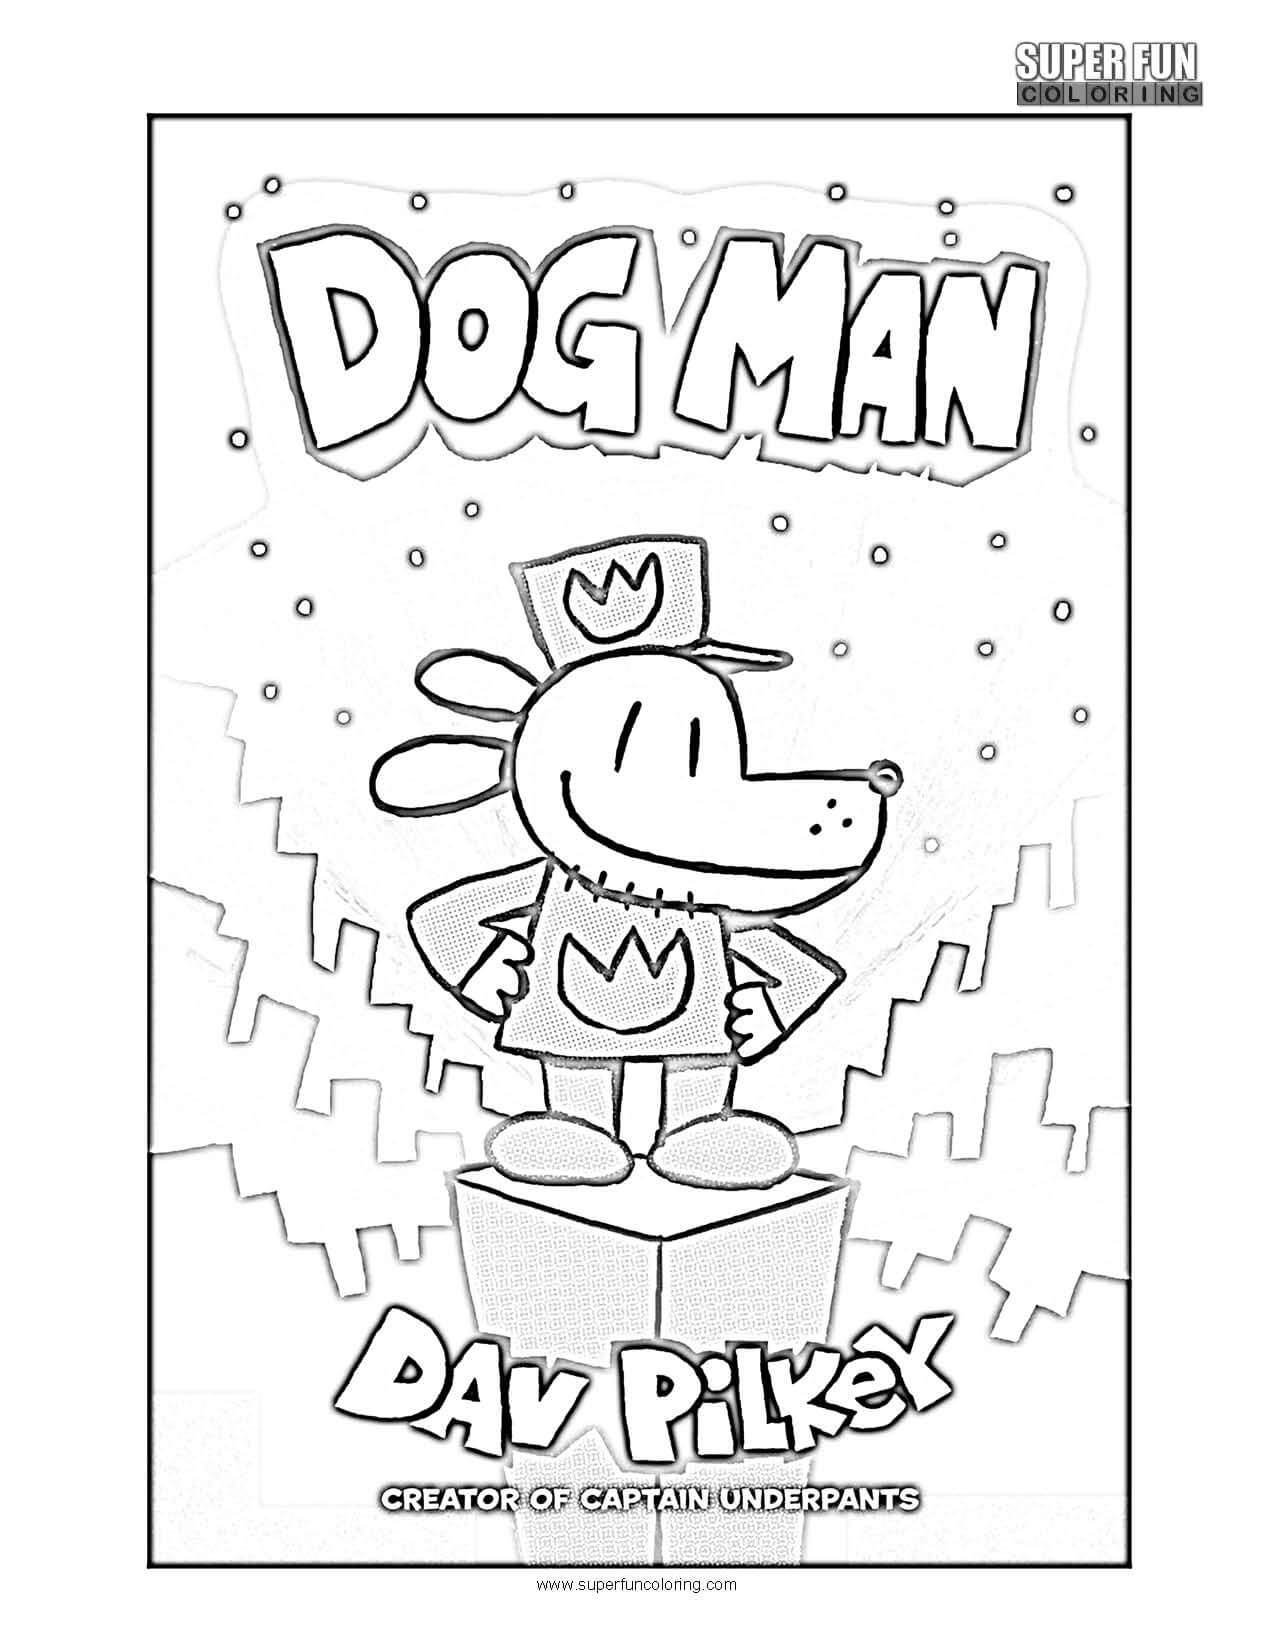 - Dogman Coloring Page - Super Fun Coloring